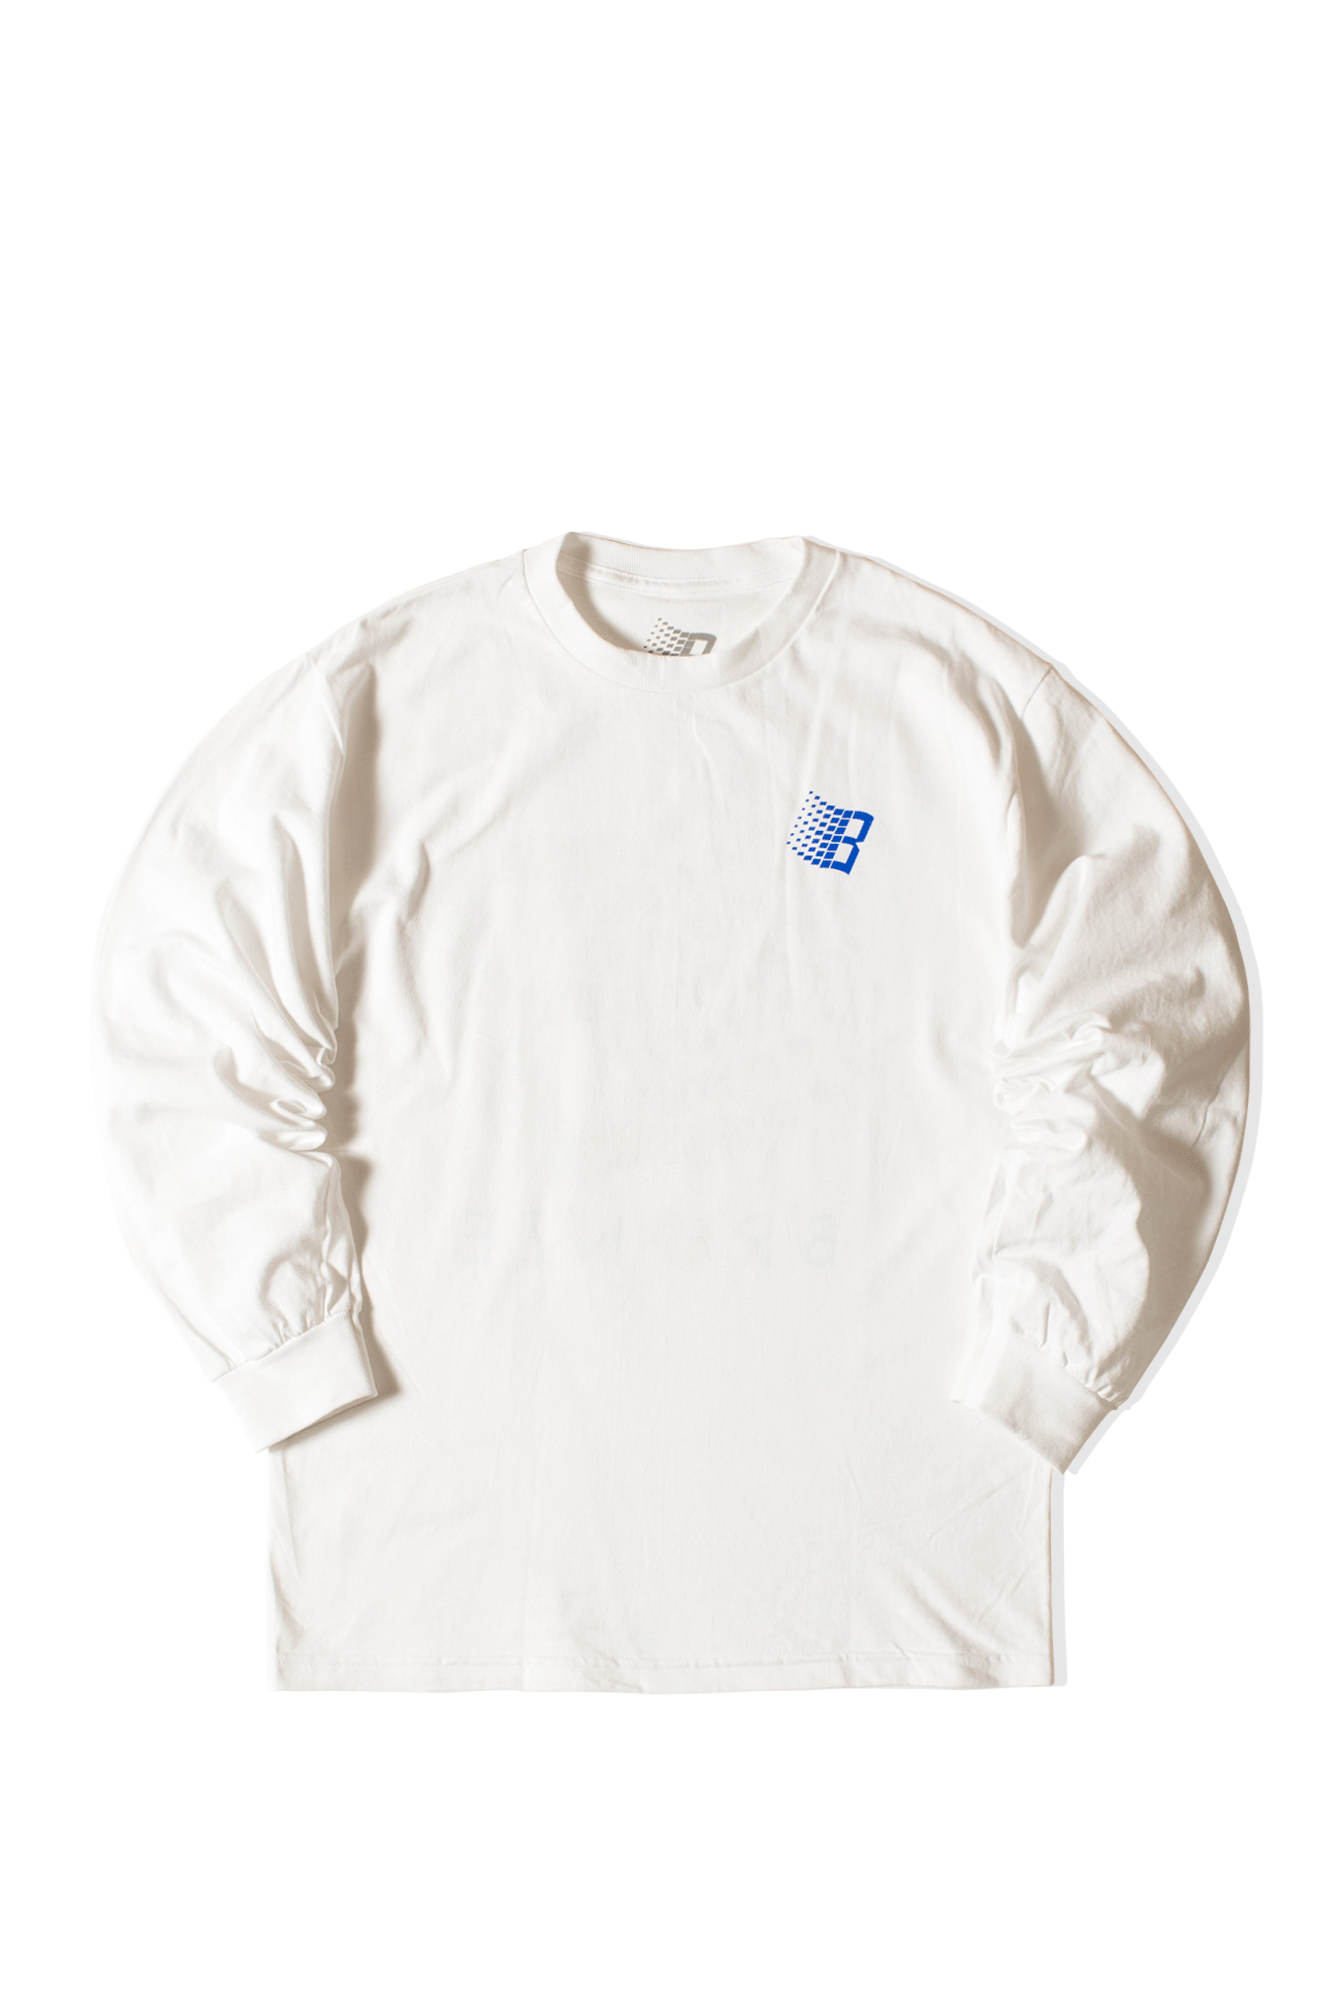 B Logo Long Sleeve Tee White